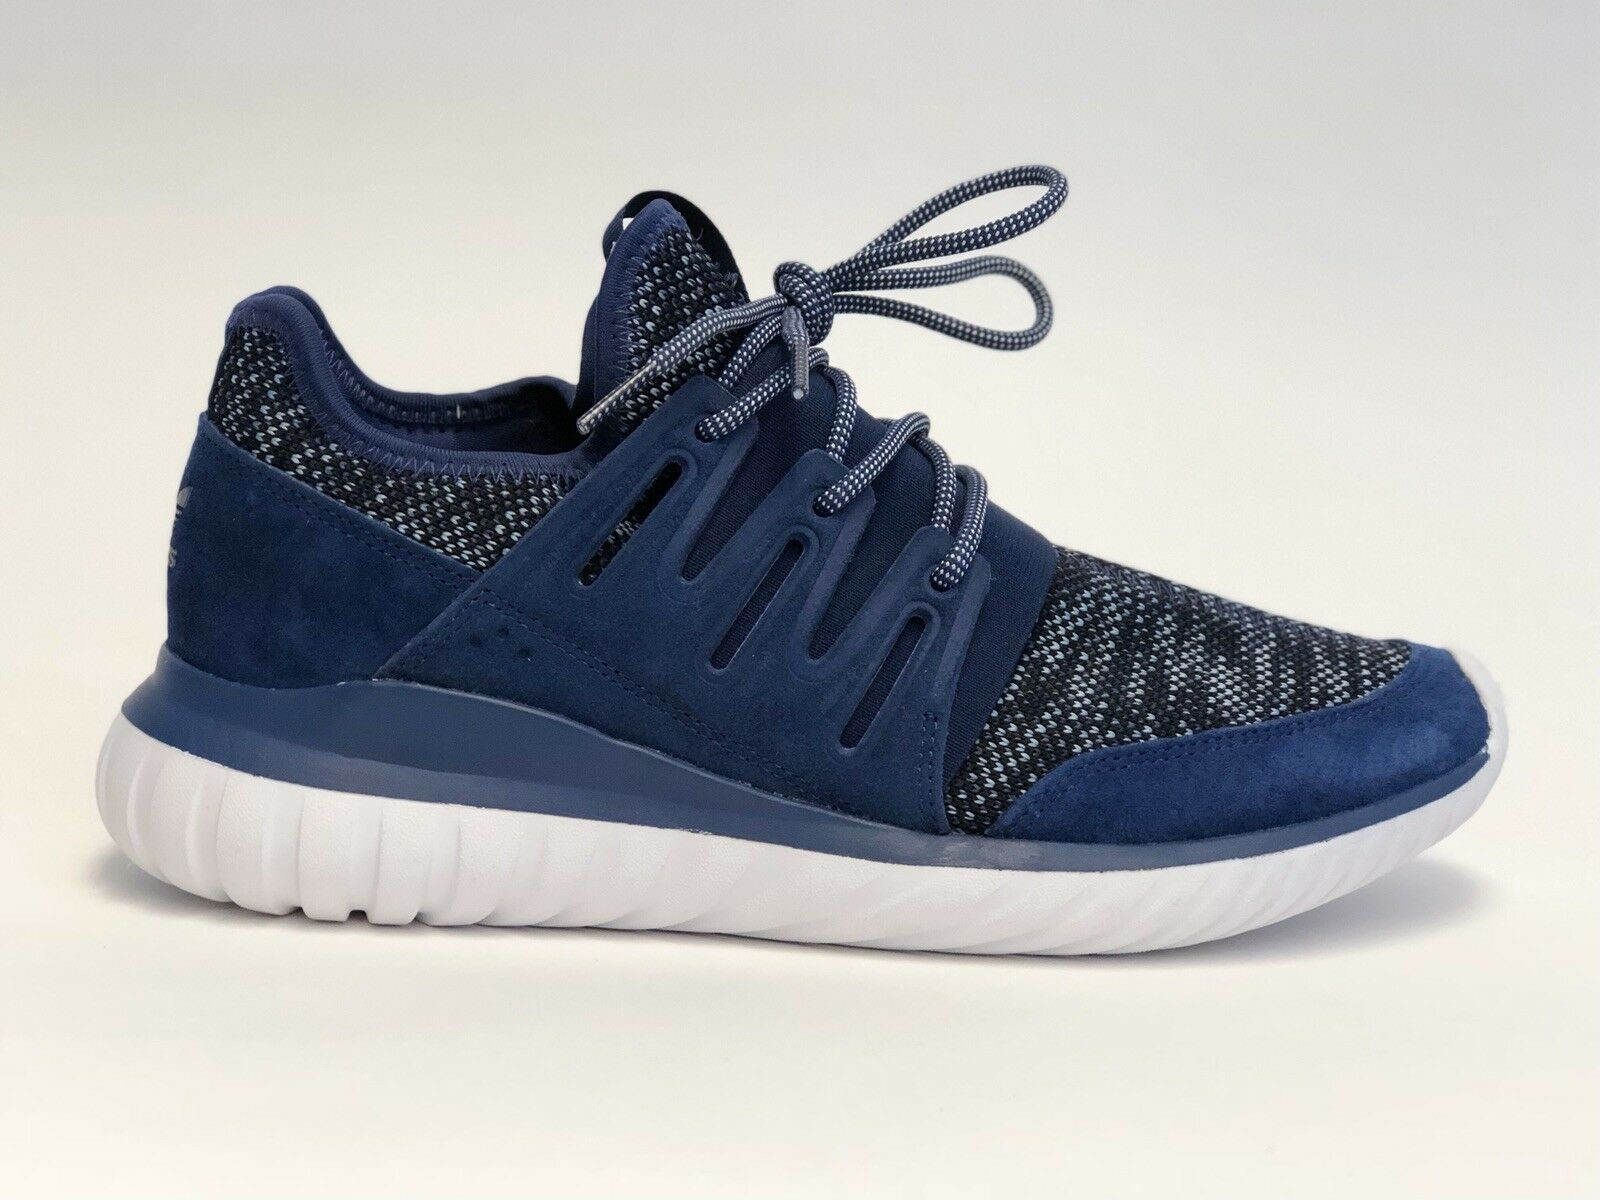 Adidas Tubular Low Top bluee Size 8 NEW